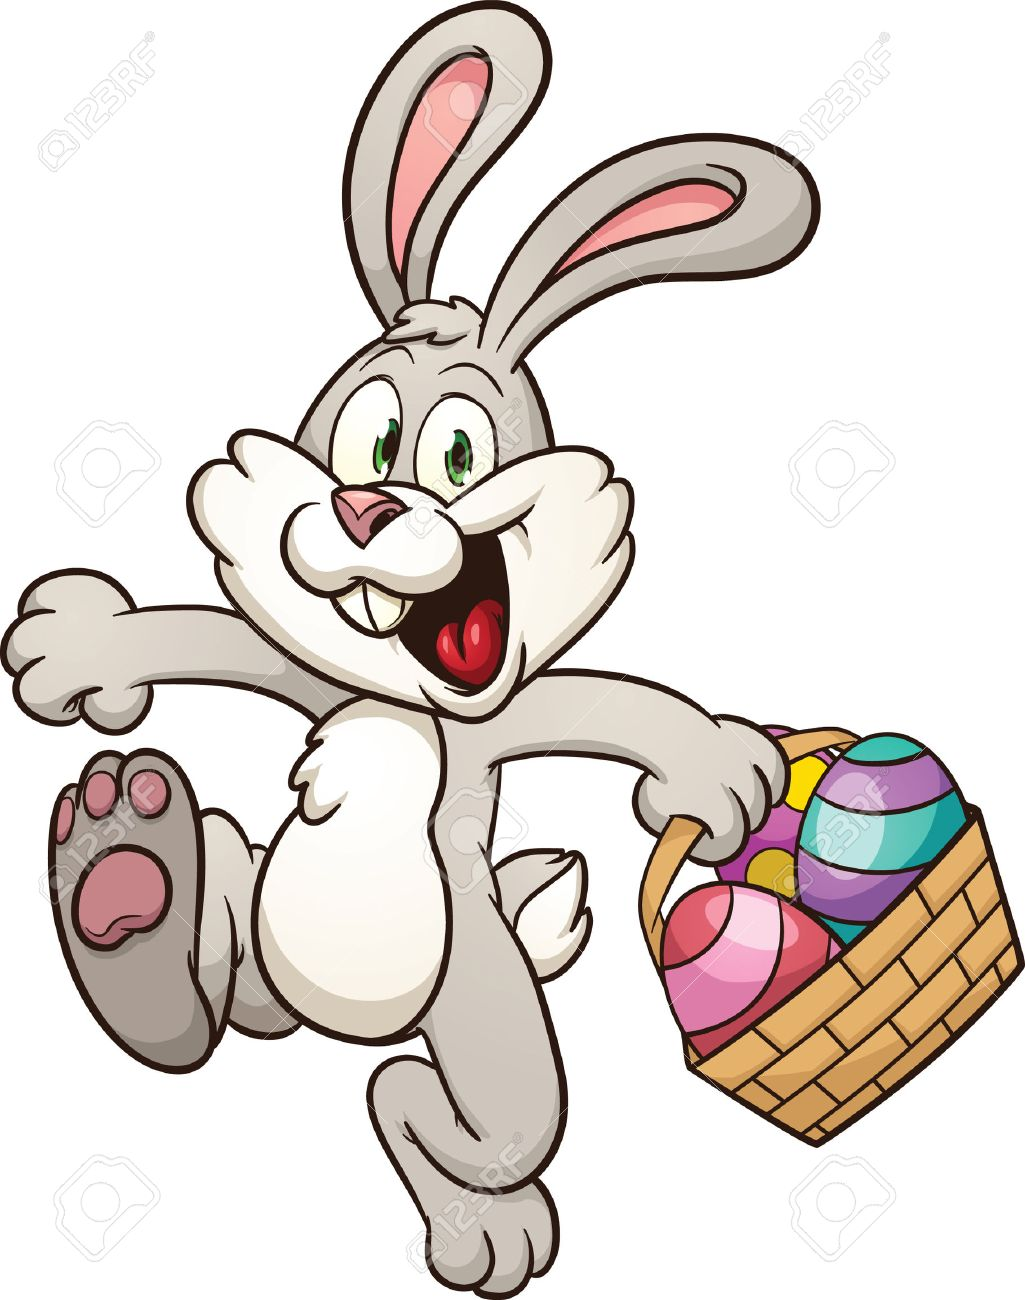 Easter Basket Bunny Clipart b - Easter Basket Bunny Clipart